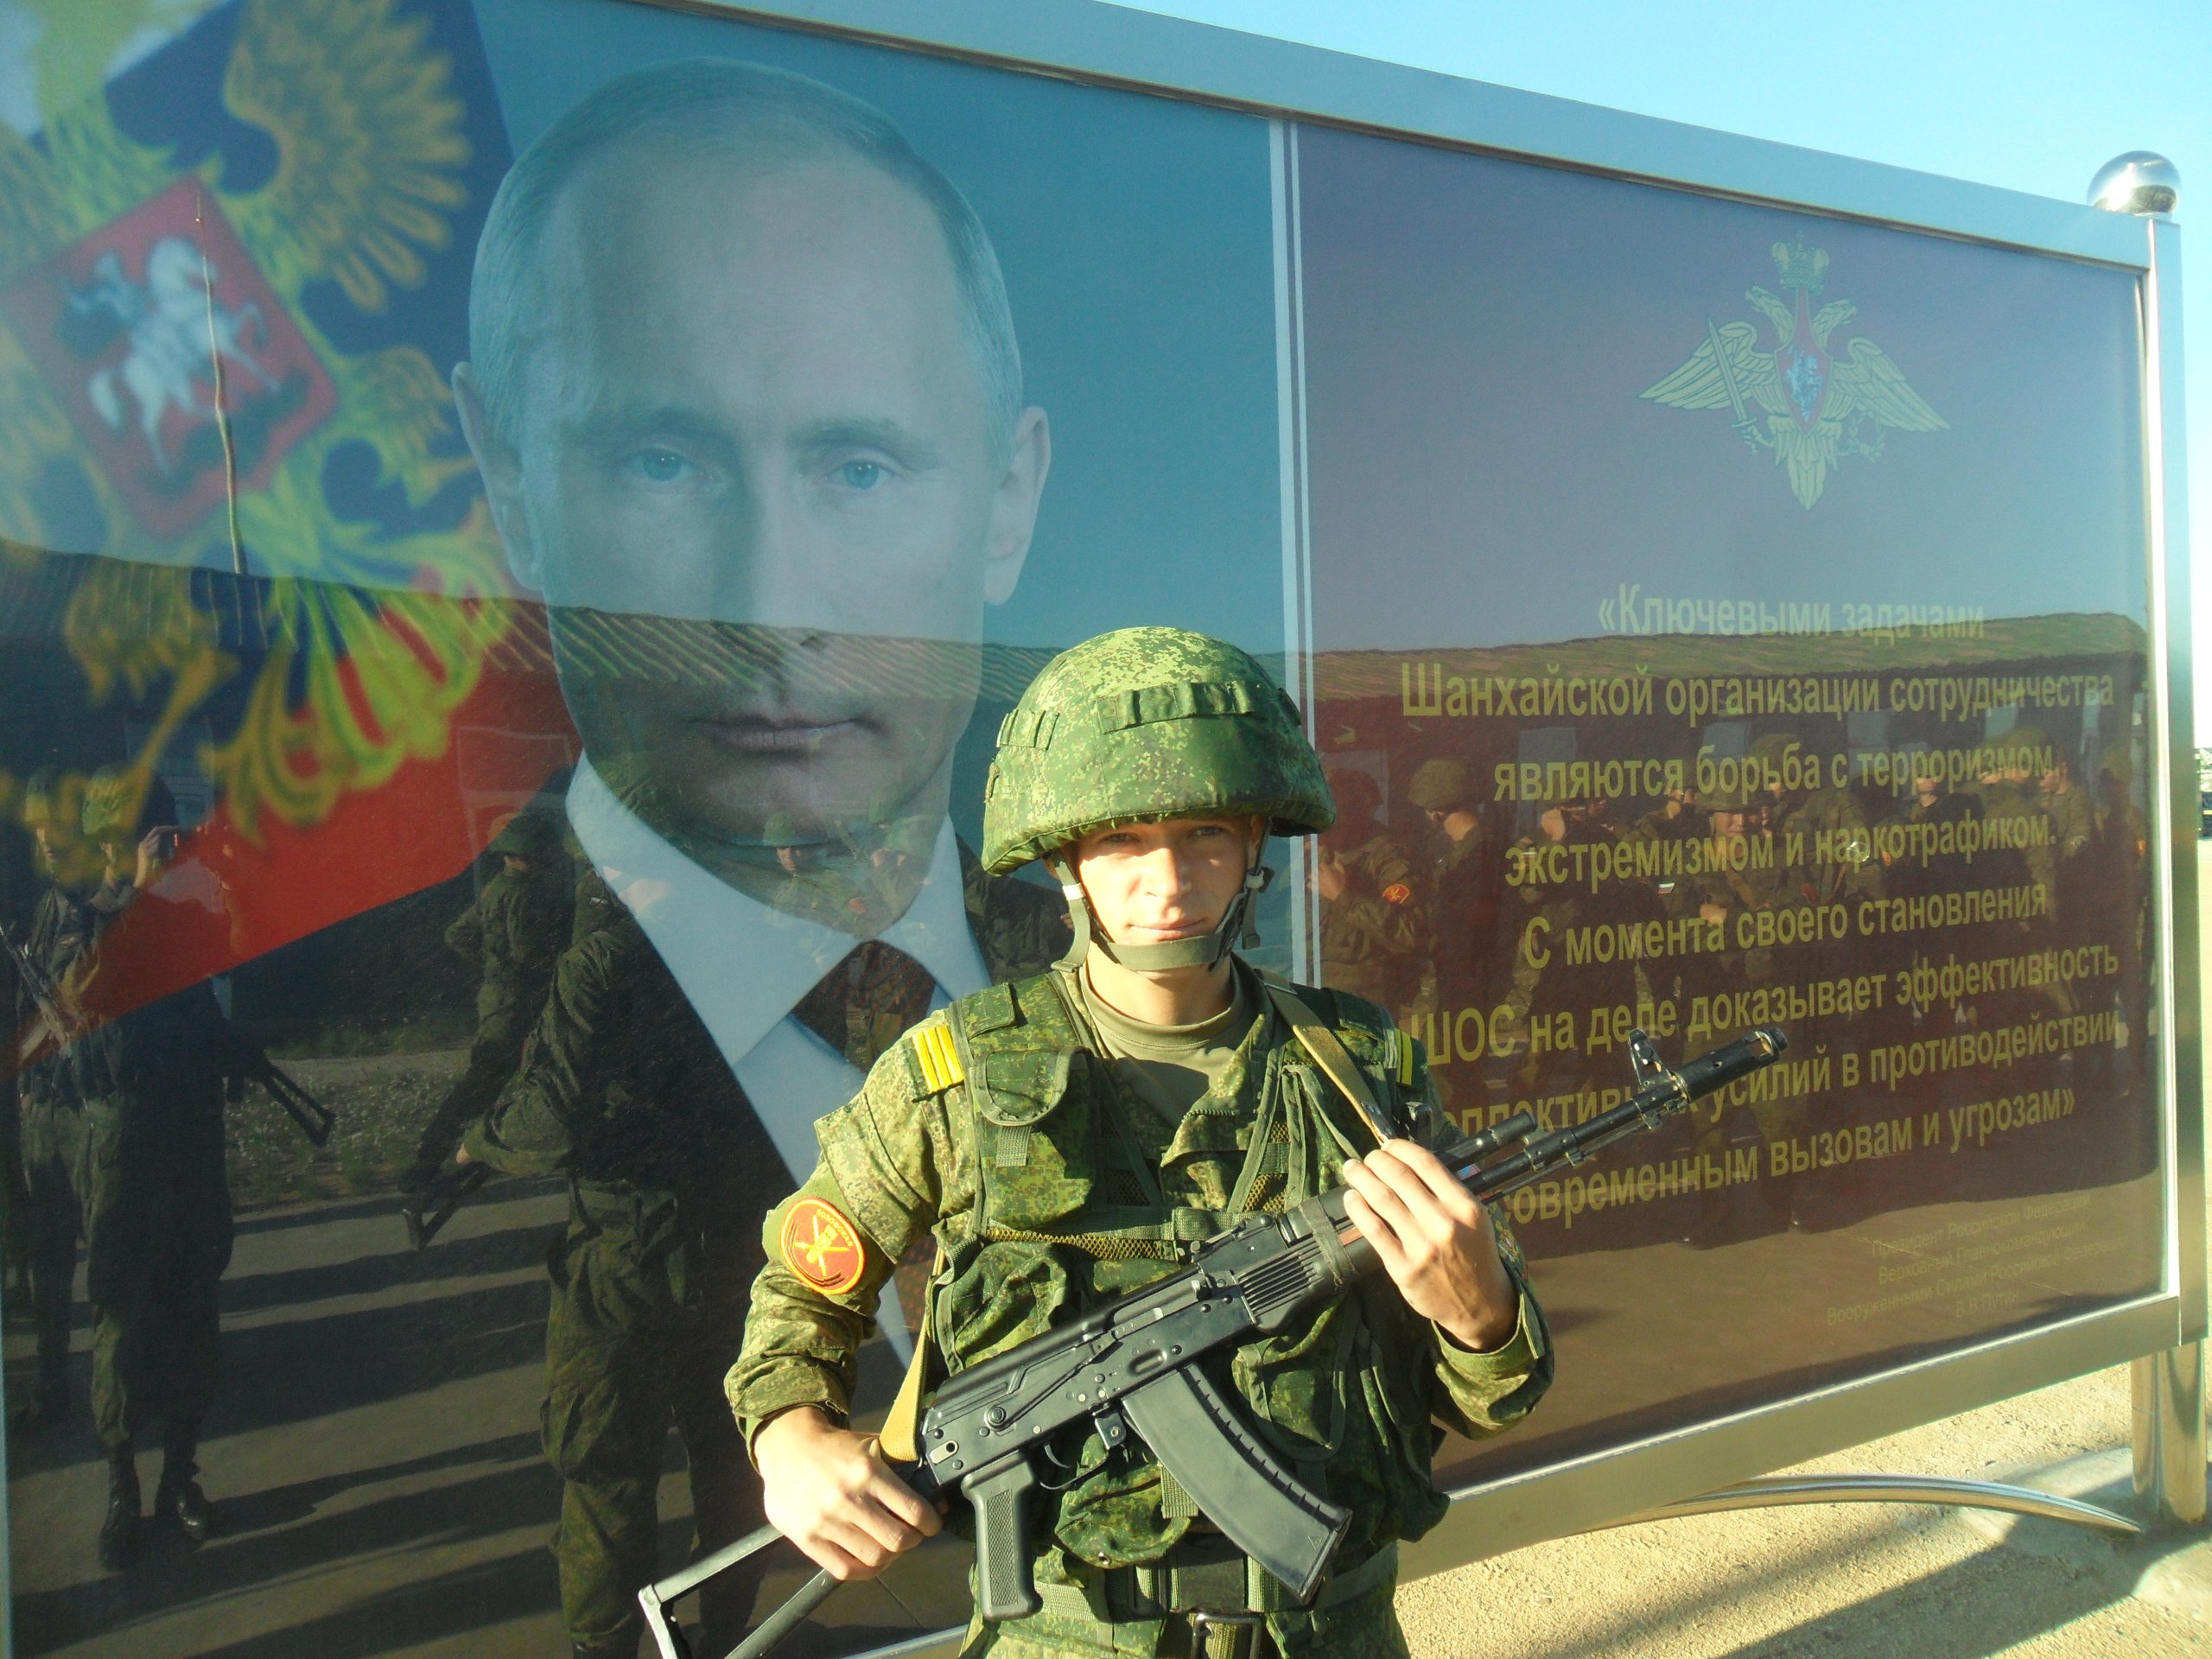 Russian Military Photos and Videos #2 - Page 33 UpK26yv1Rfg